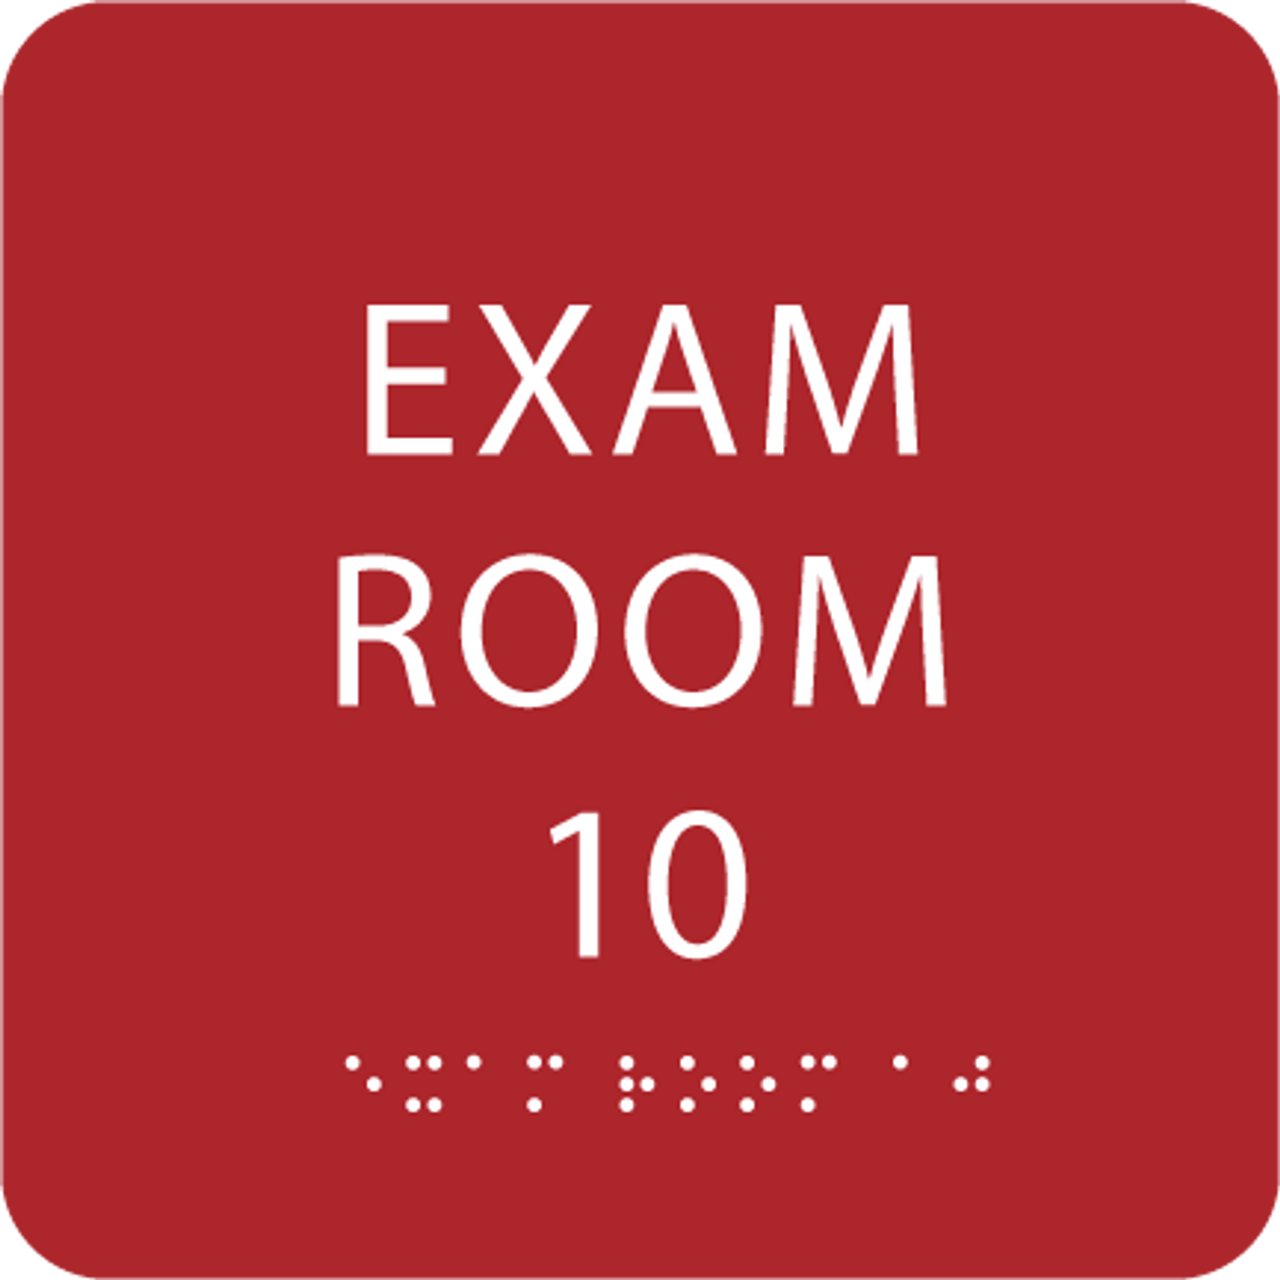 Red Exam Room 10 Sign w/ ADA Braille